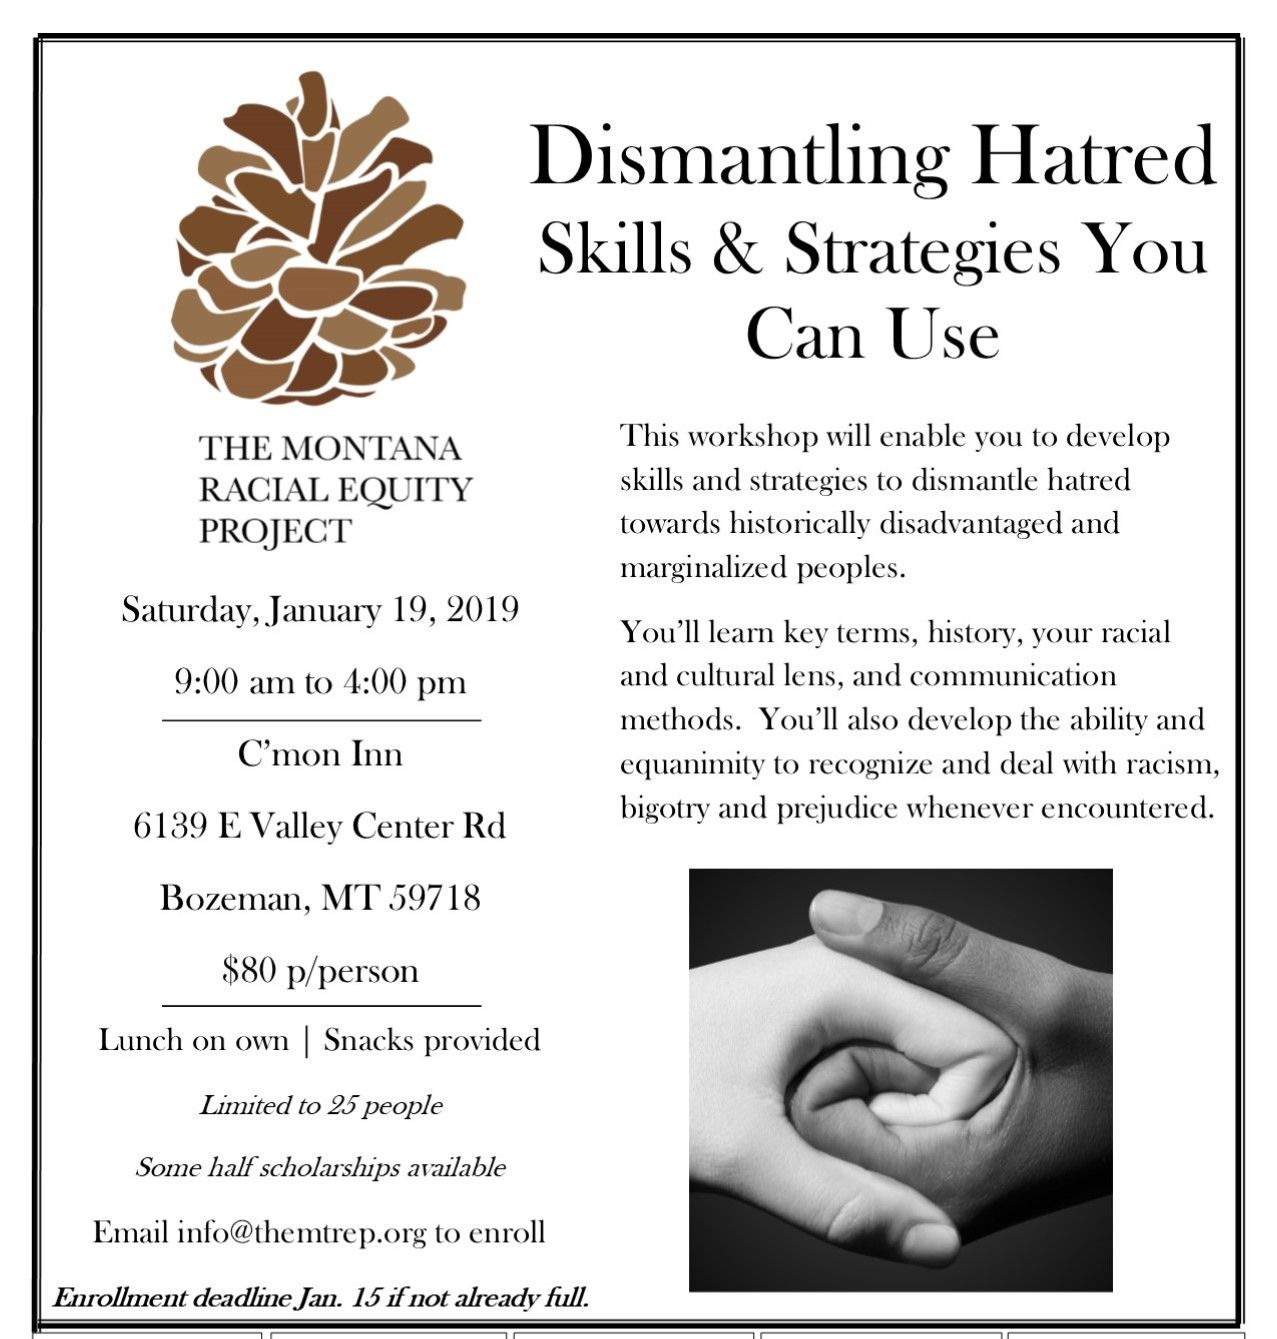 Dismantling Hatred: Skills and Strategies You Can Use